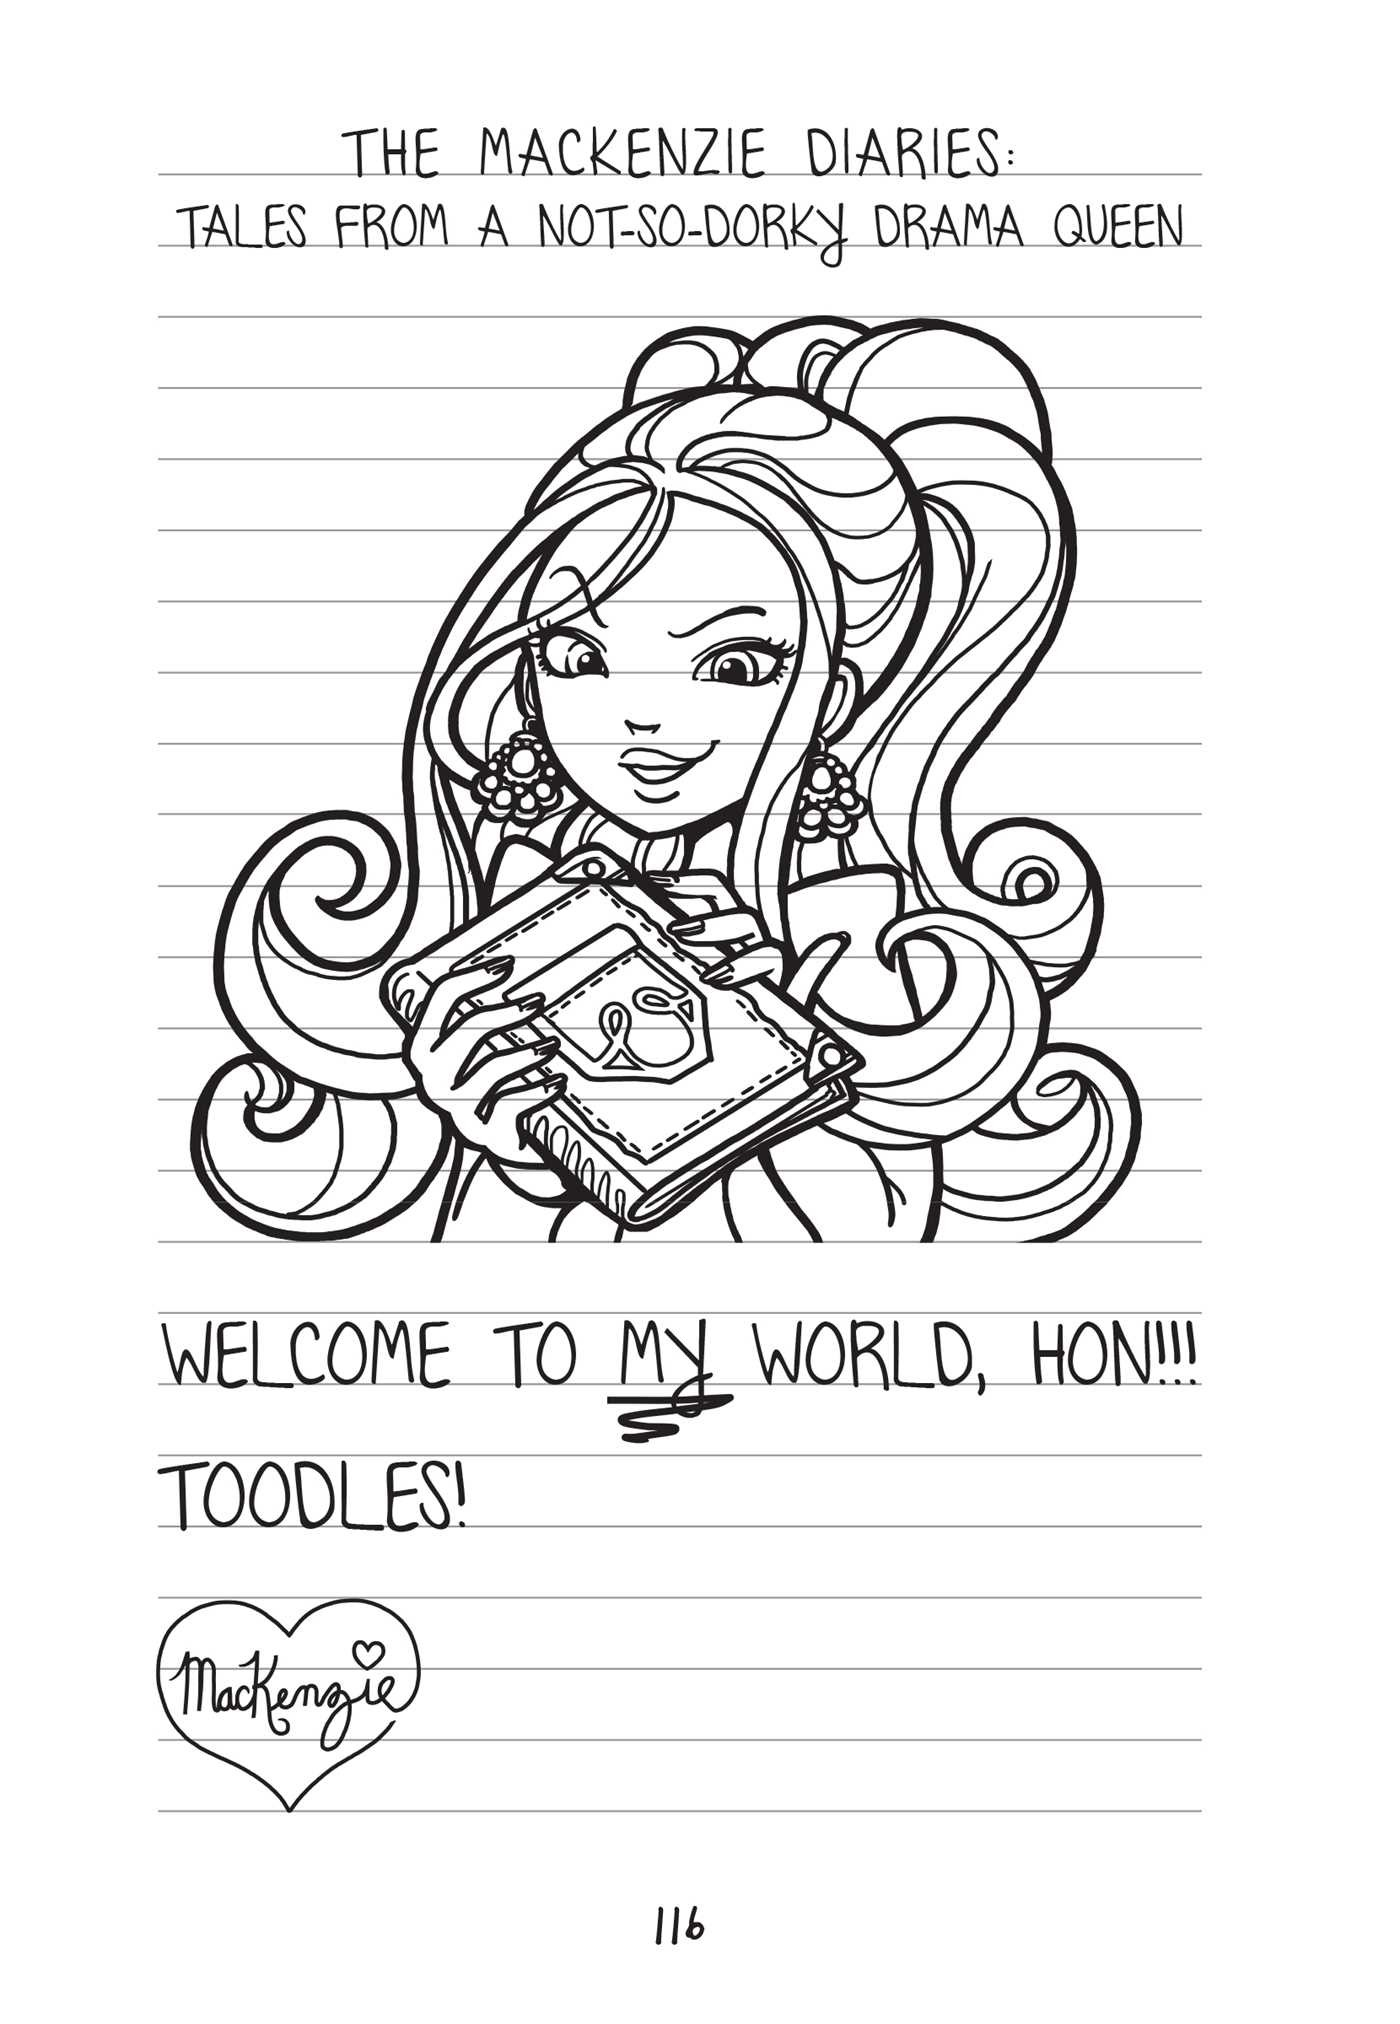 Coloring pages for dork diaries - Dork Diaries Tales From A Not So Dorky Drama Queen The Dork Diaries Wiki Fandom Powered By Wikia